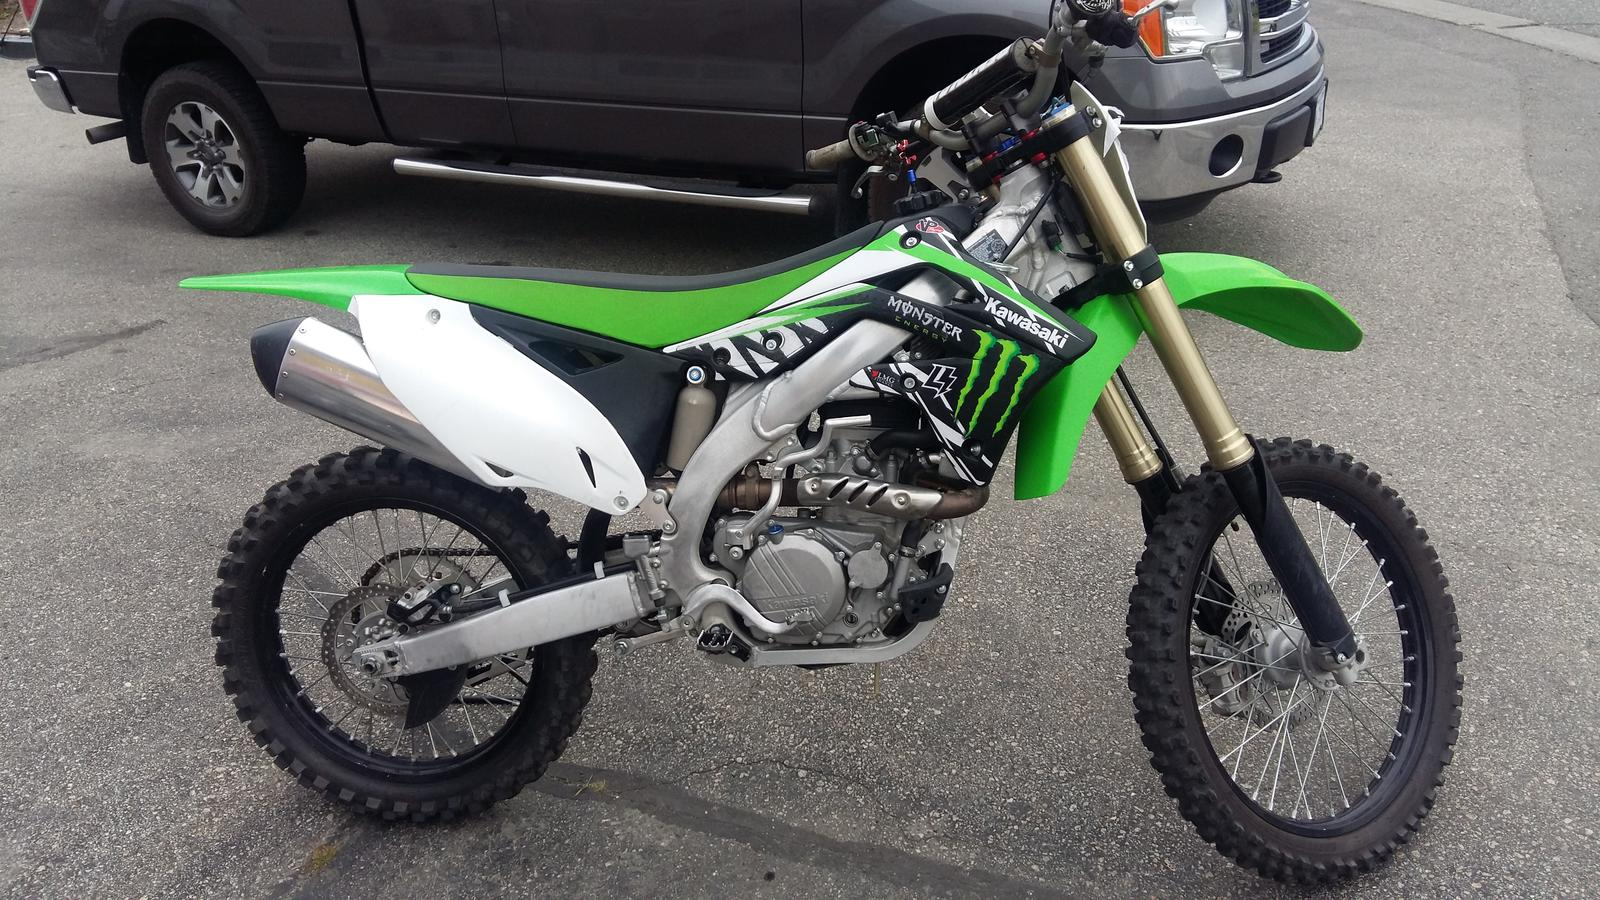 Used Inventory From Kawasaki Rtr Performance Kamloops Bc 250 374 3141